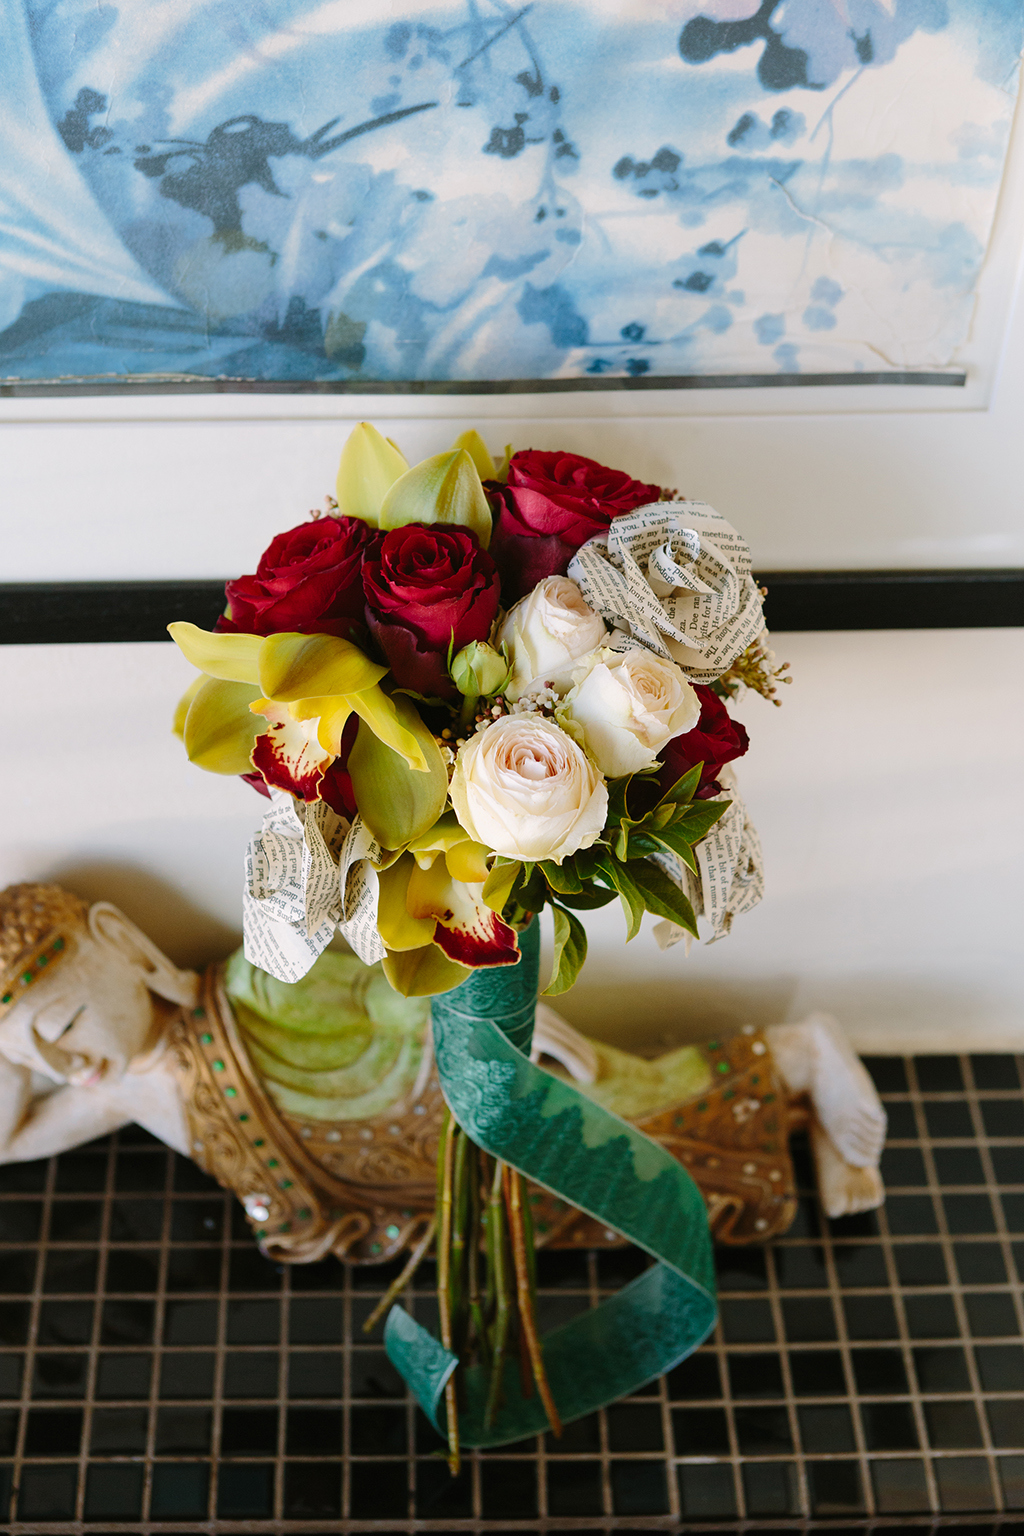 Rose and Paper Flower Bouquet | Credit: Andries Combrink & Runaway Romance